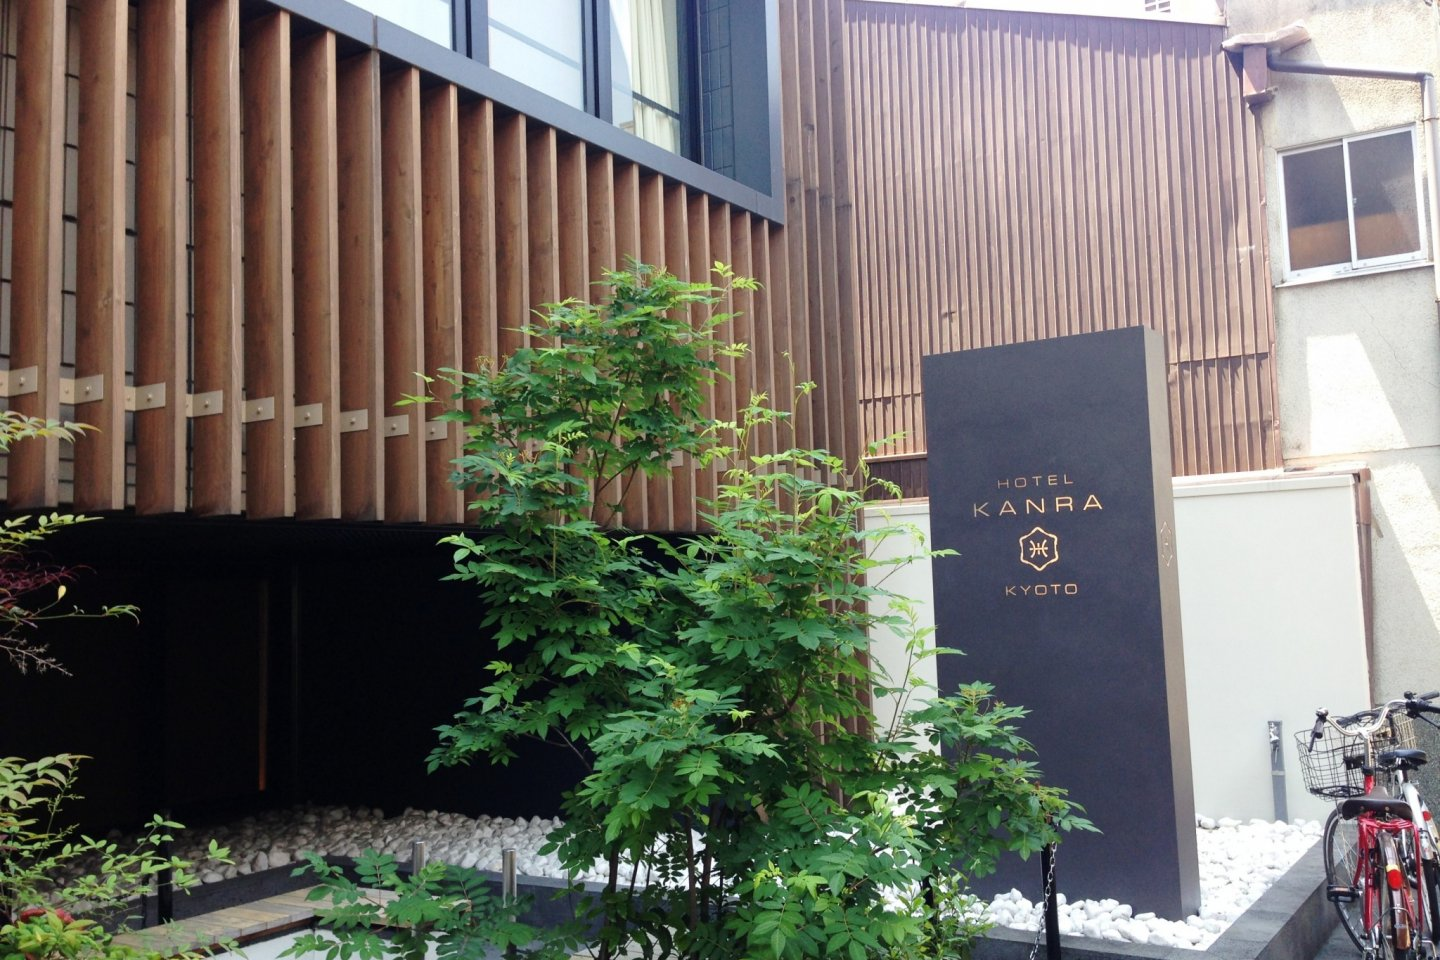 Hotel Kanrais a short walk from Gojo subway station and about 15 mins north of Kyoto Station